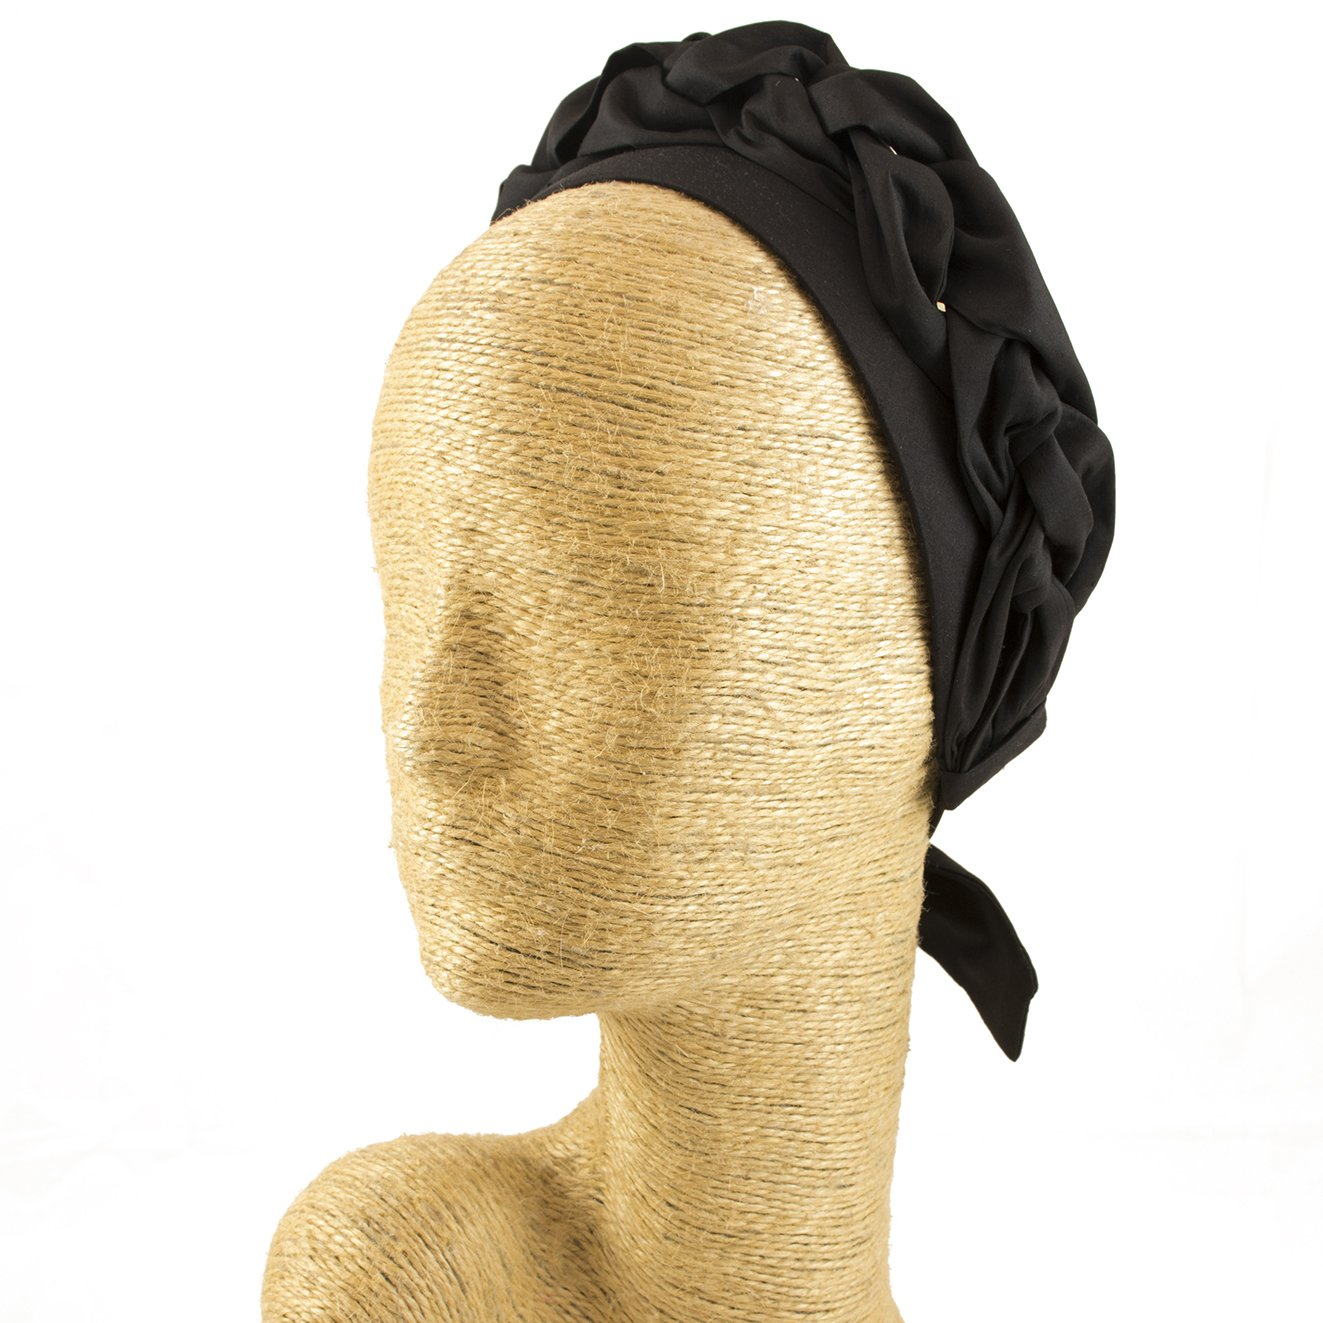 Fascinator, Silk Headbands, Millinery, Worldwide Free Shipment, Delivery in 2 Days, Customized Tailoring, Designer Fashion, Party Hat, Derby Hats, Hair braid, Head wrap, Boho Accessories, Black